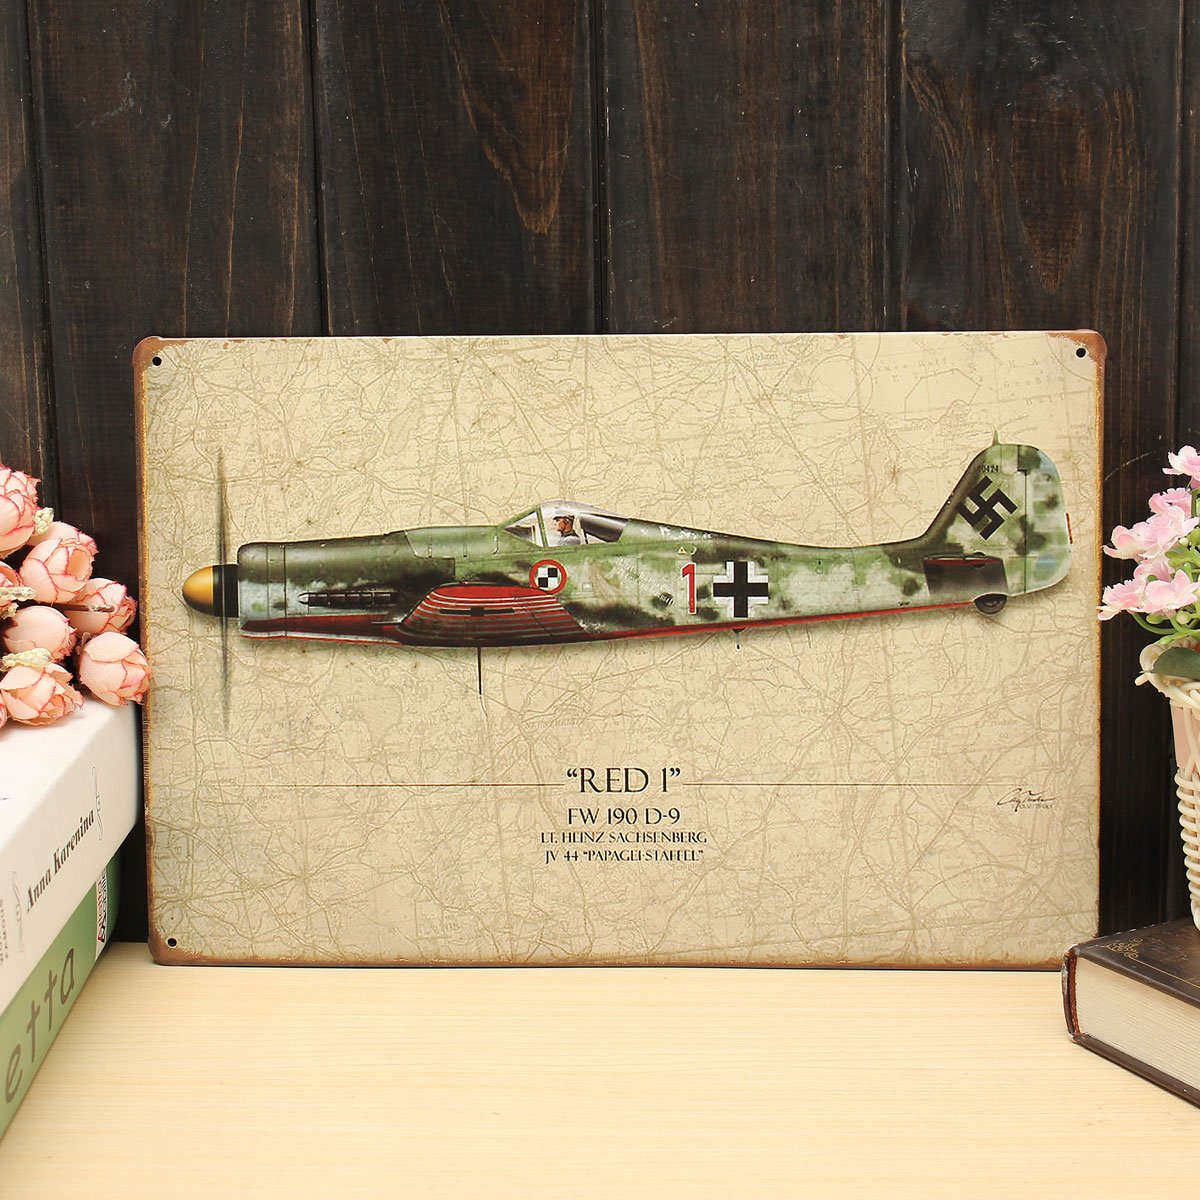 Amazon.com: Chinis 20x30cm World War Vintage Aircraft Plane Military ...